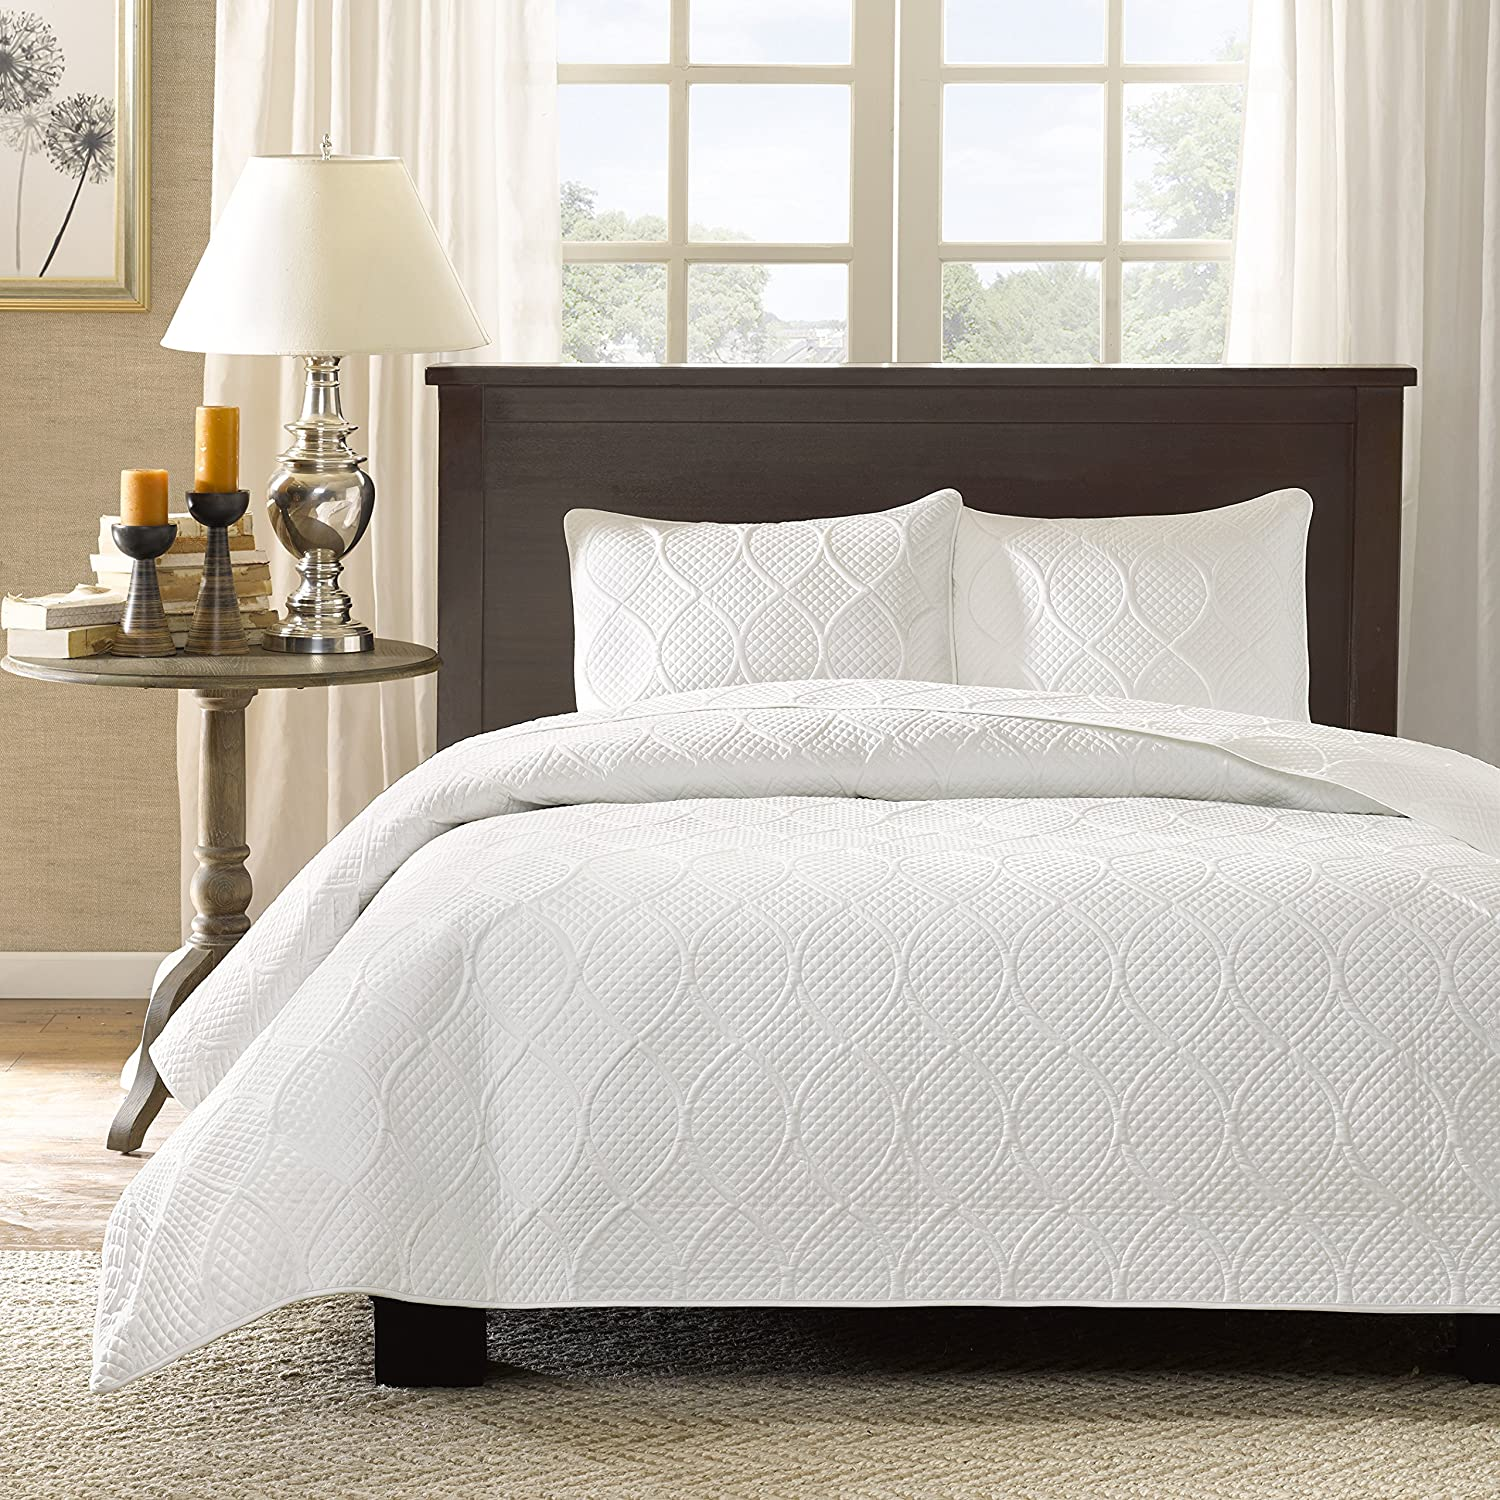 amazoncom madison park corrine  piece coverlet set kingcaliforniaking white home  kitchen. amazoncom madison park corrine  piece coverlet set king